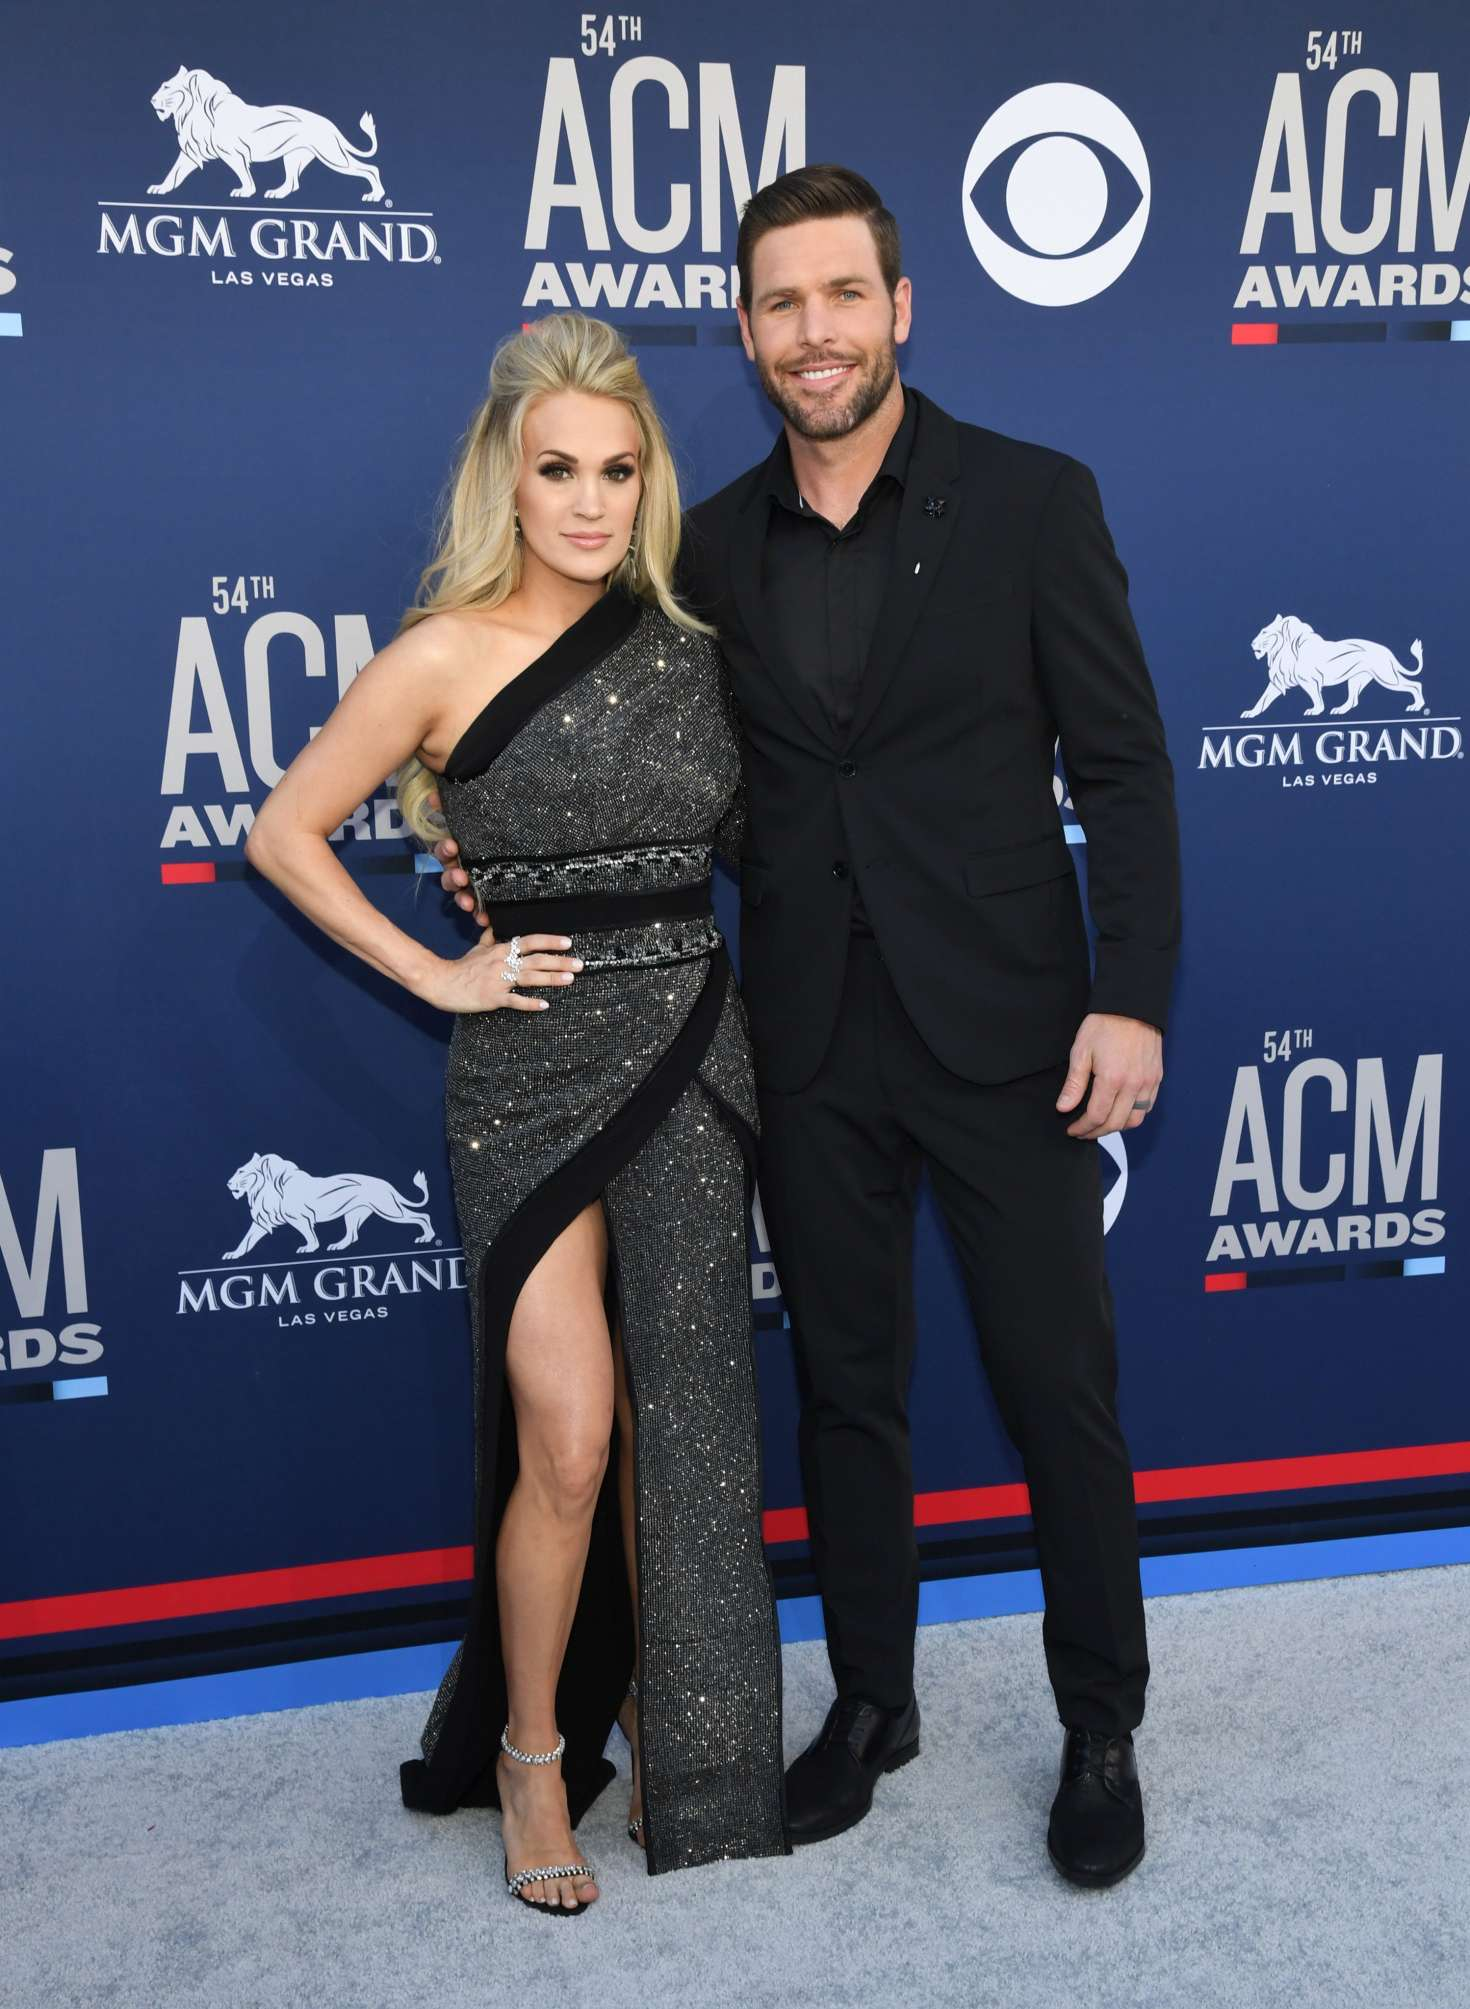 Carrie Underwood 2019 : Carrie Underwood: 2019 Academy of Country Music Awards -04